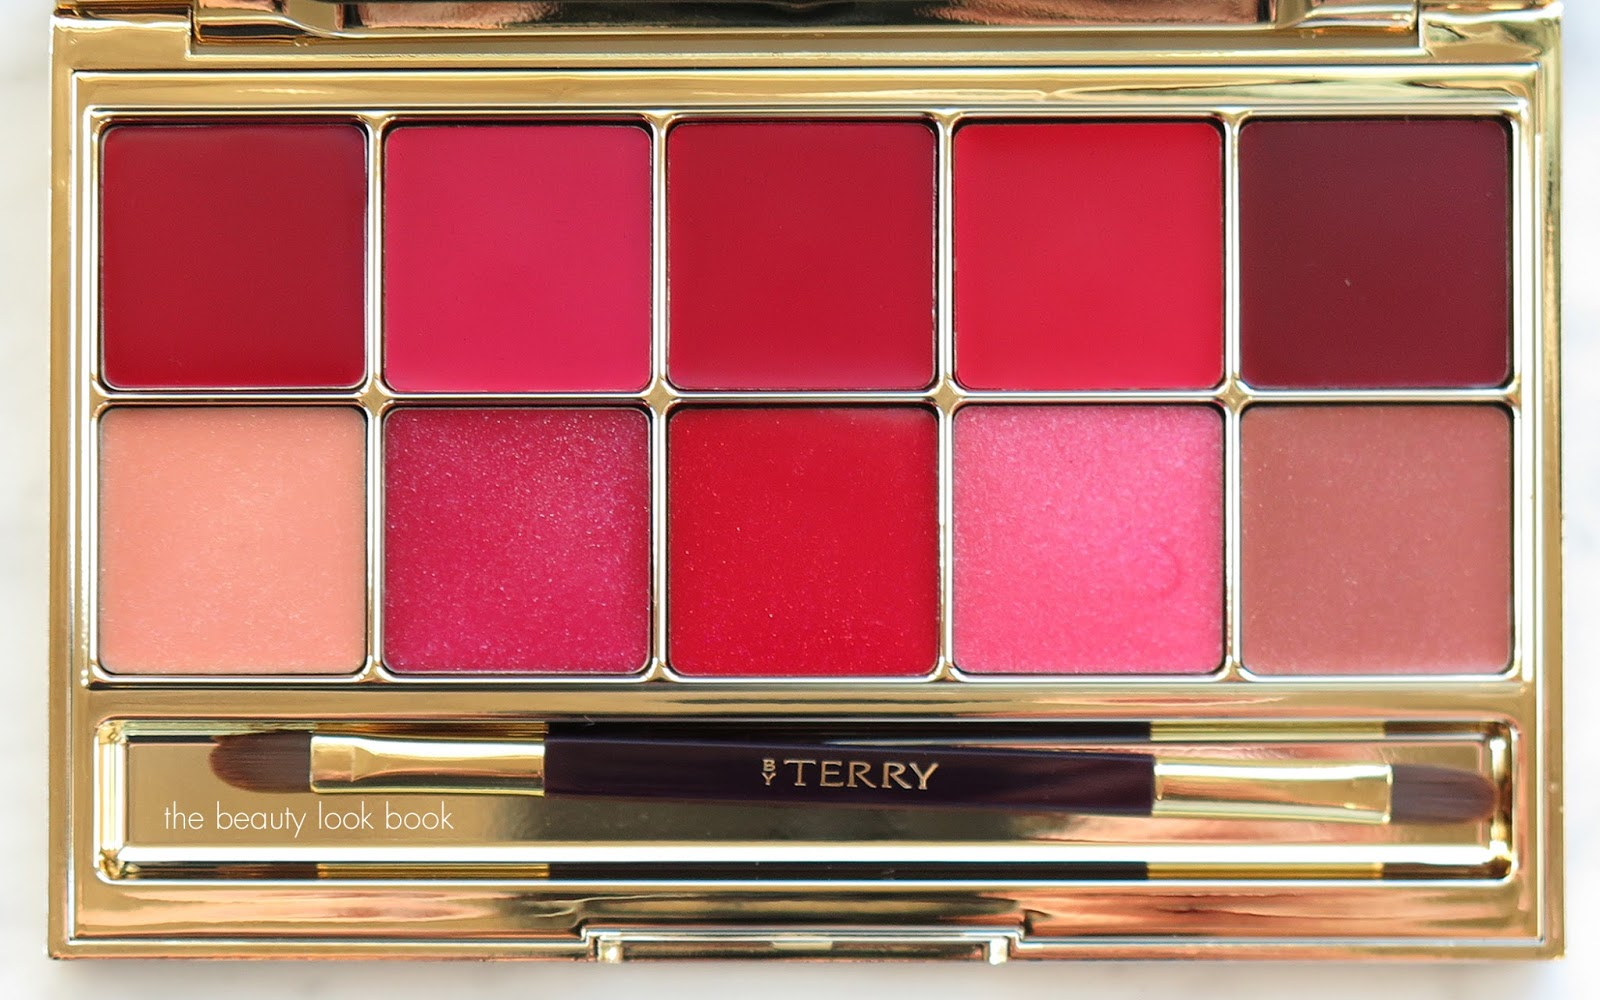 By Terry Gold Jewel Lip Kiss Palette - Holiday 2015